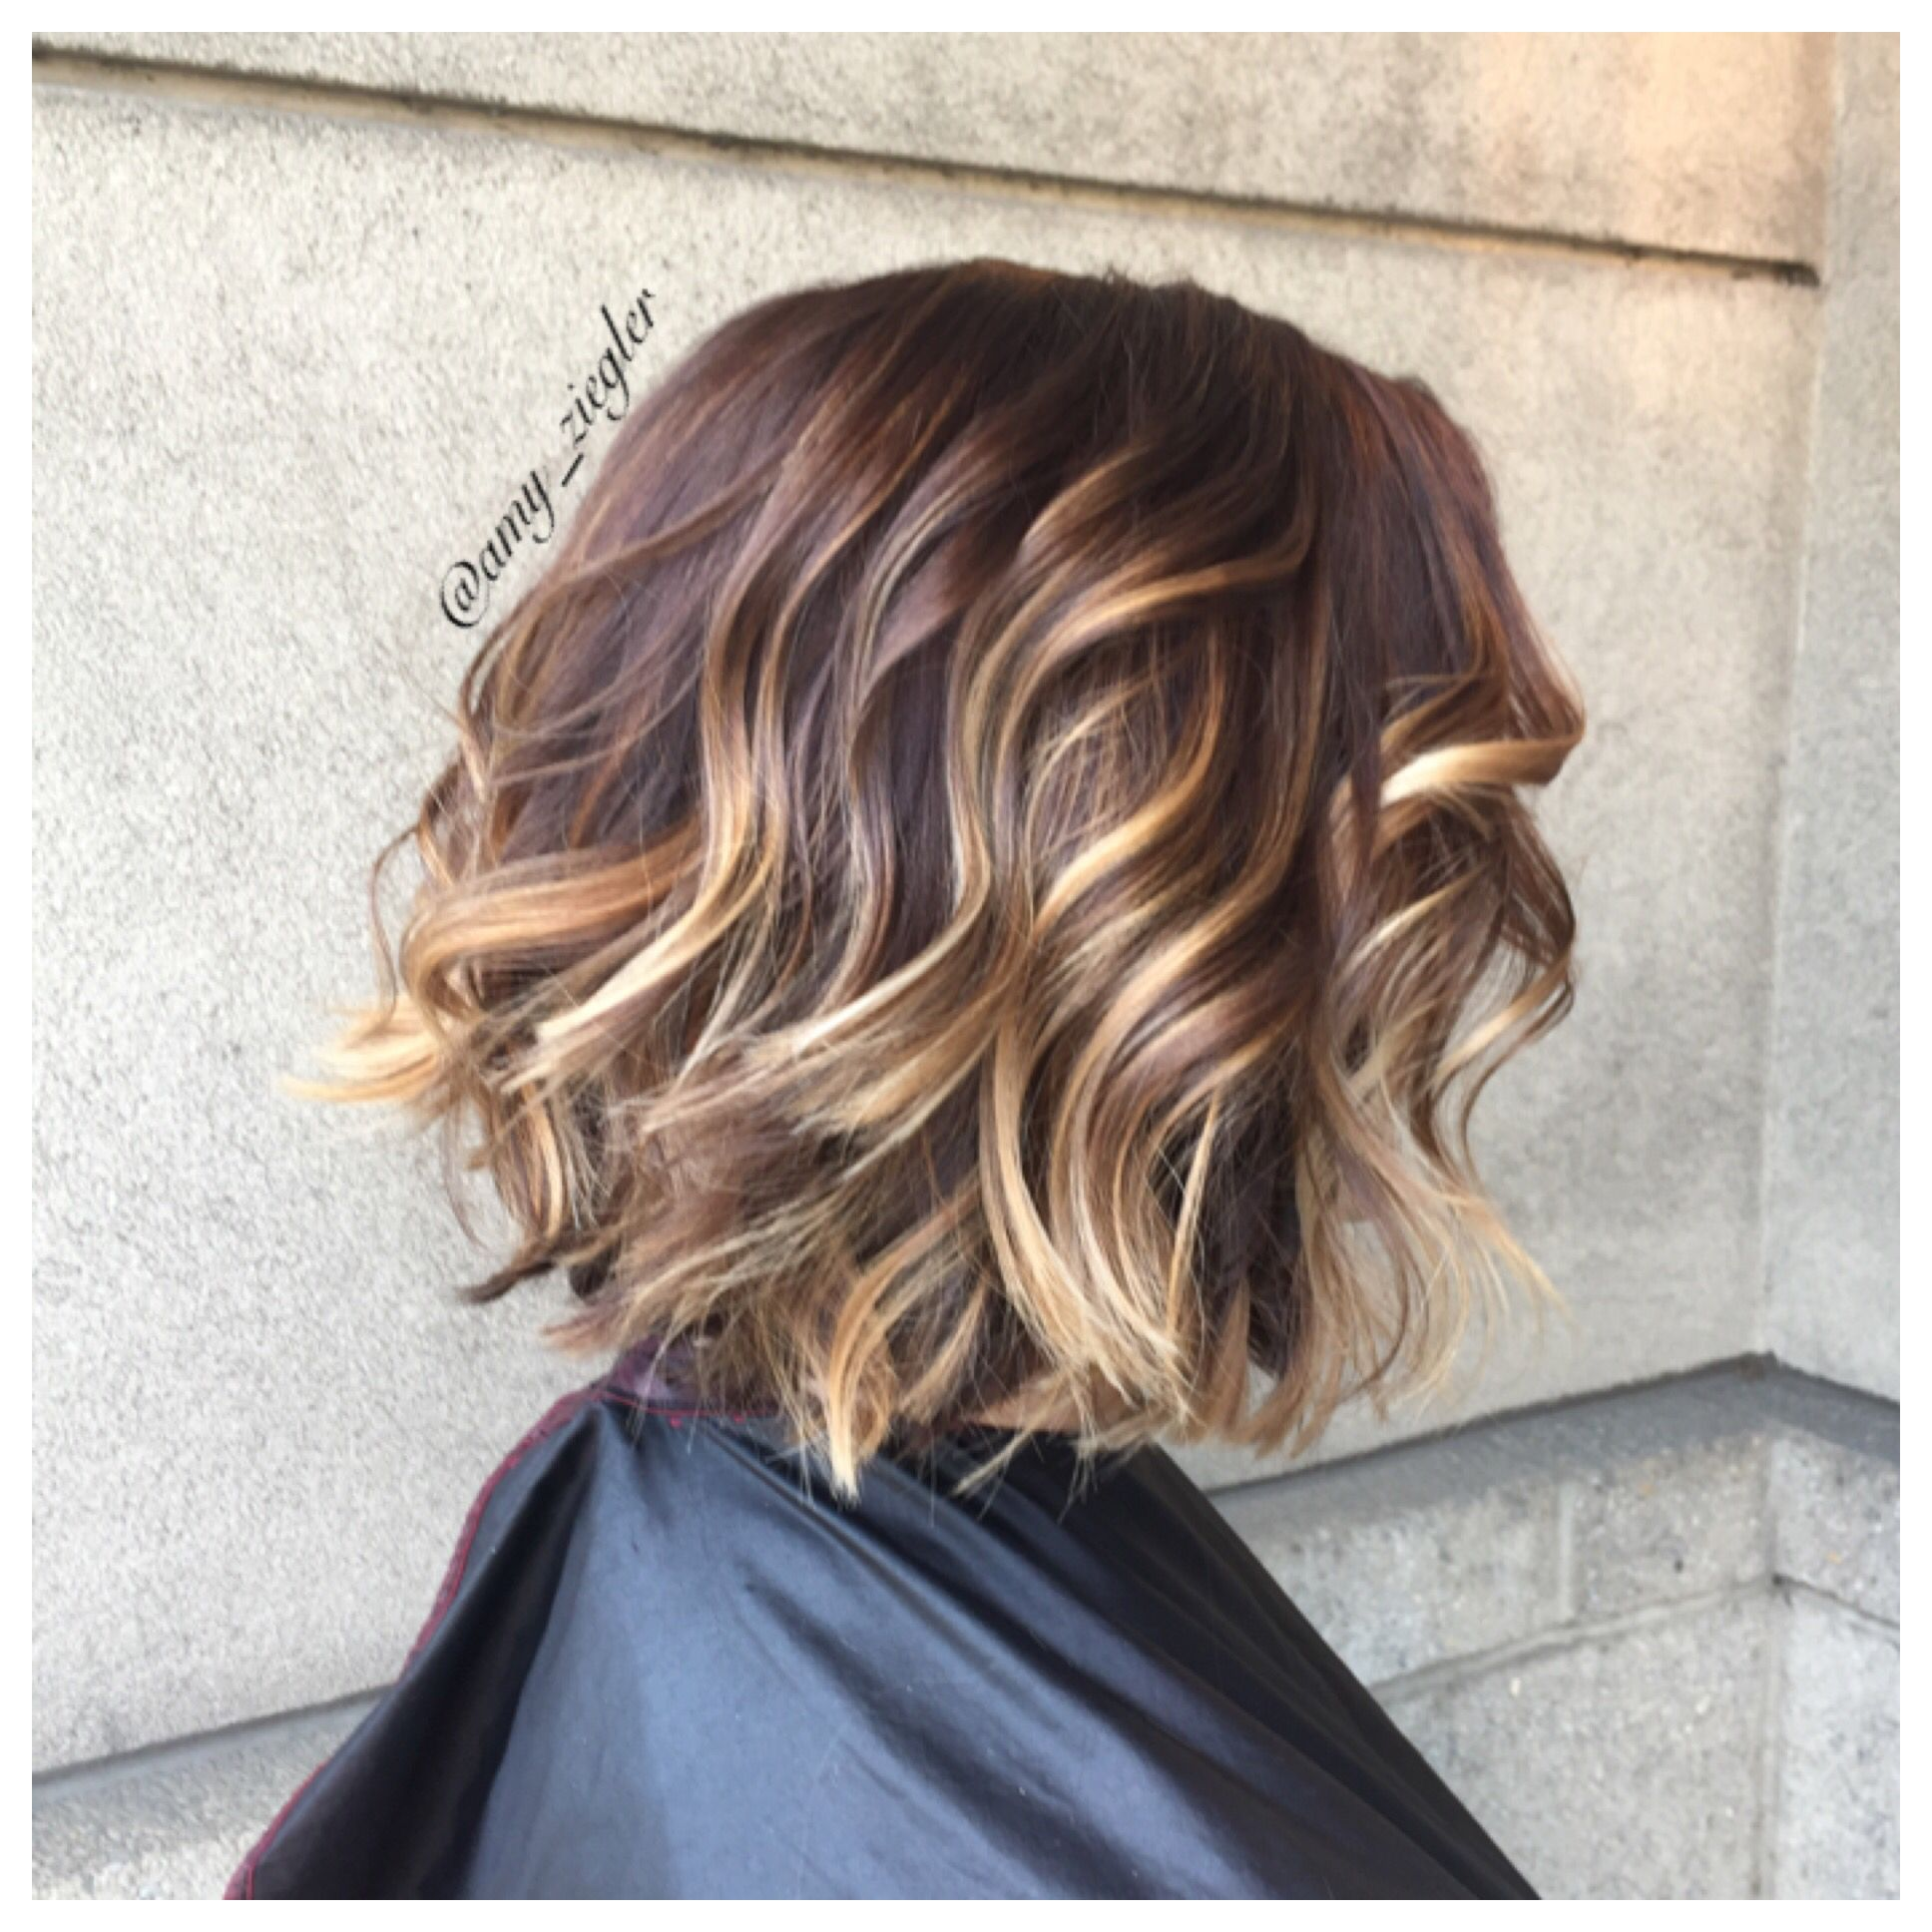 Redken brunette balayage and a textured bob by @askforamy